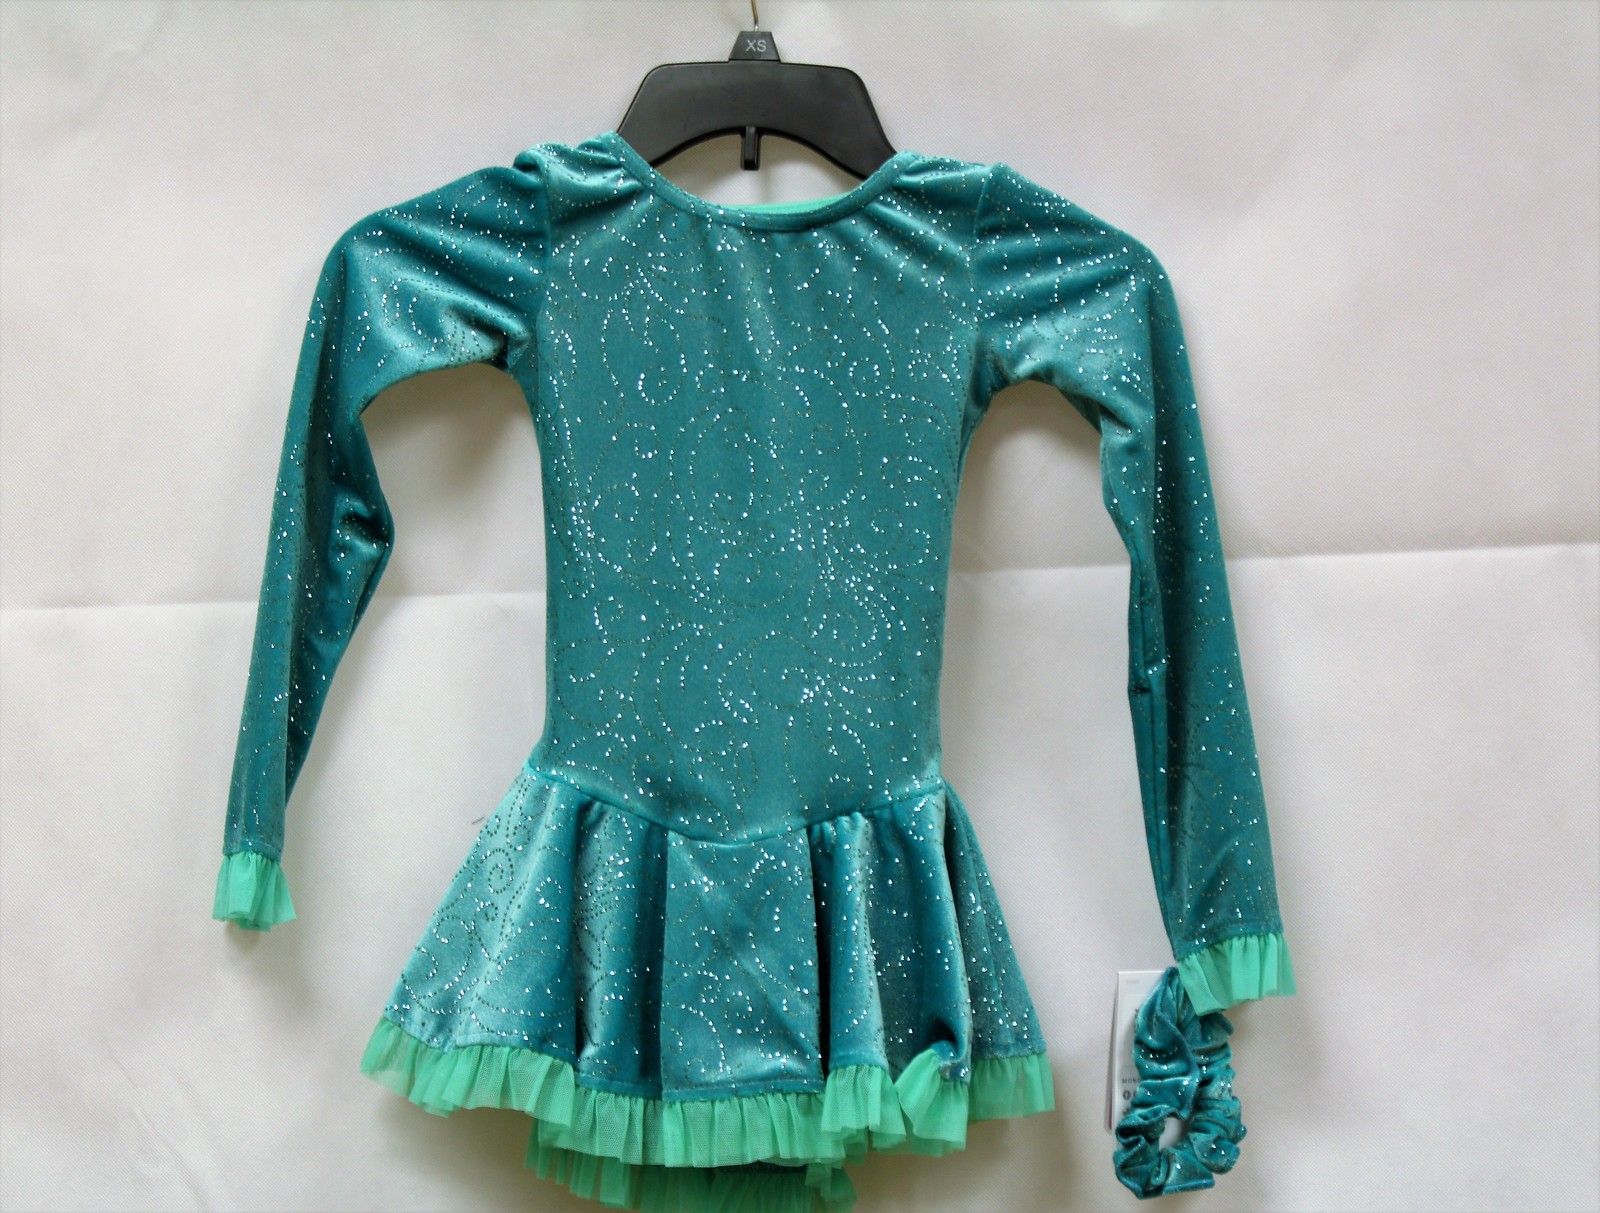 Primary image for Mondor Model 2739 Born to Skate Skating Dress - Little Mermaid Size Adult Small